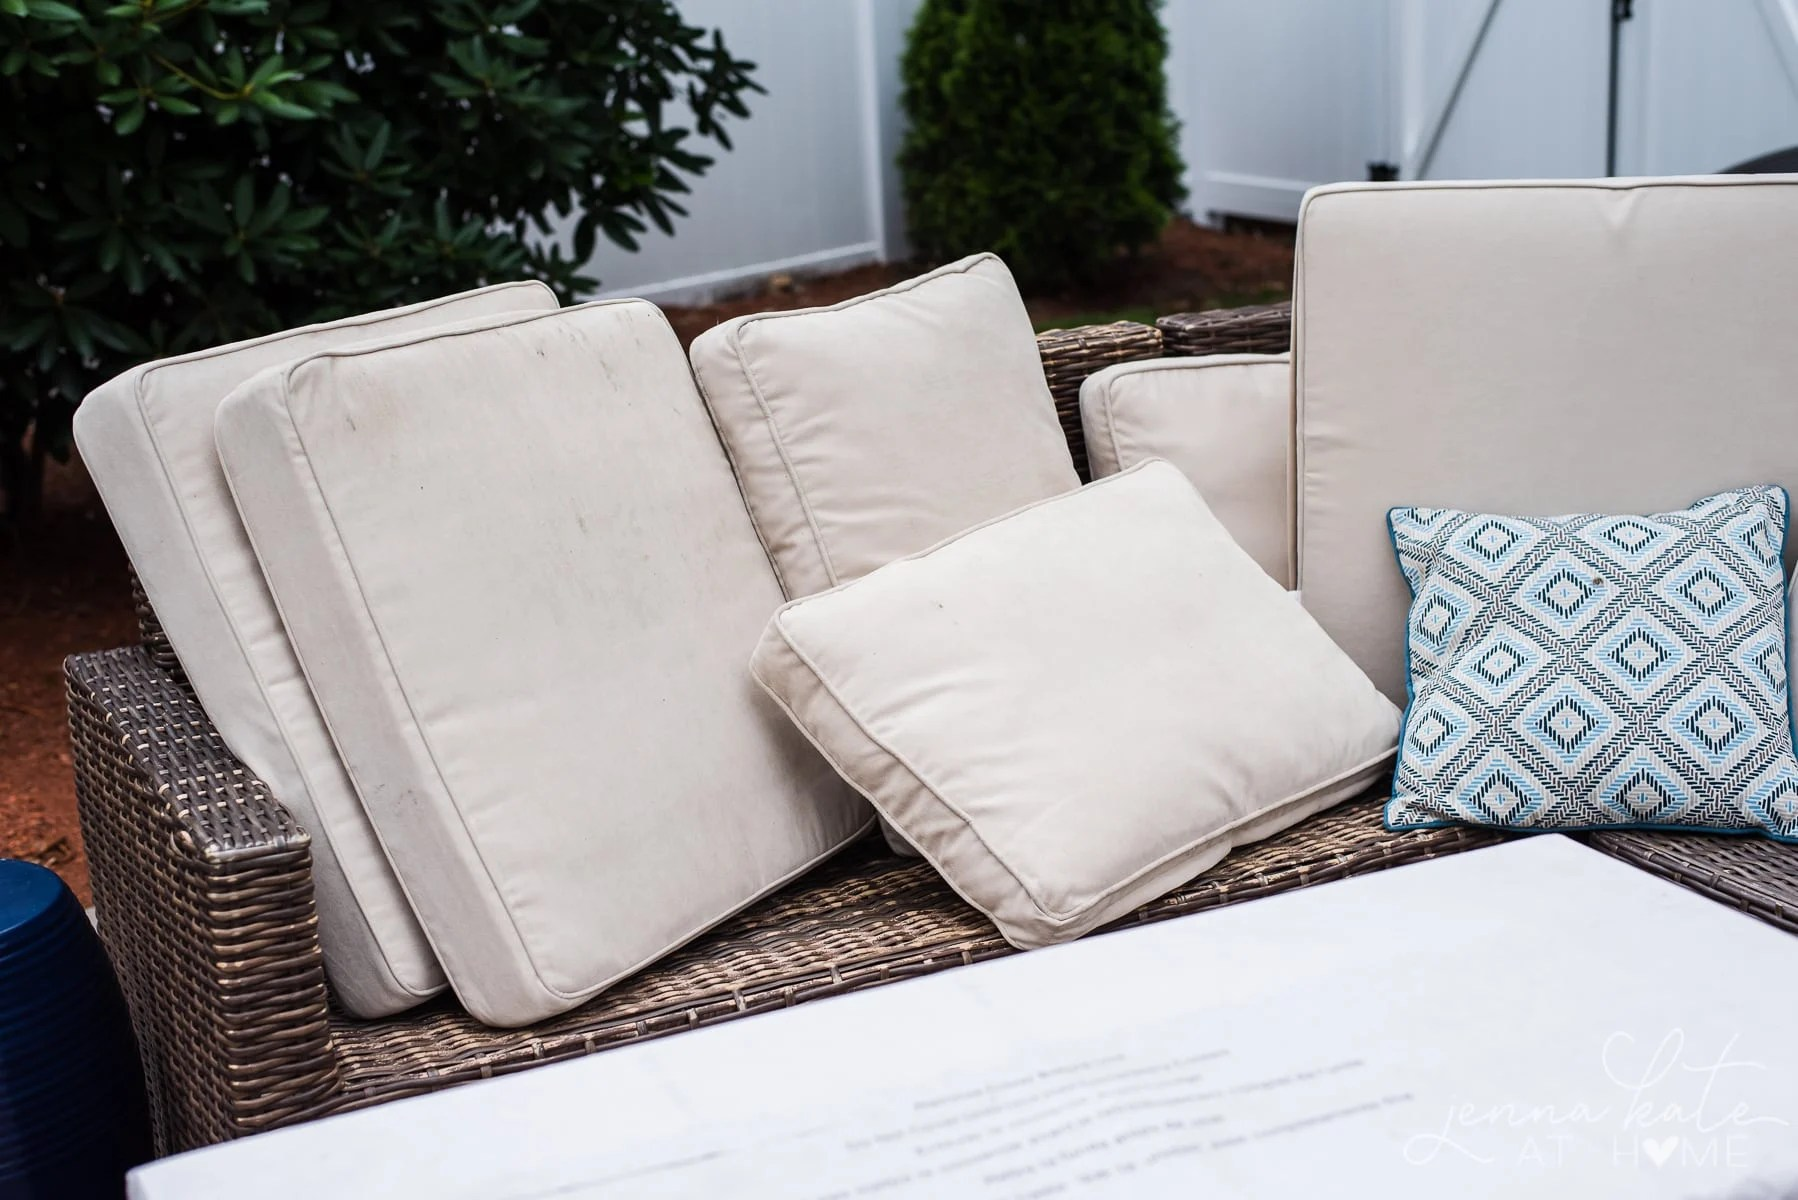 dirty patio cushions that need to be washed